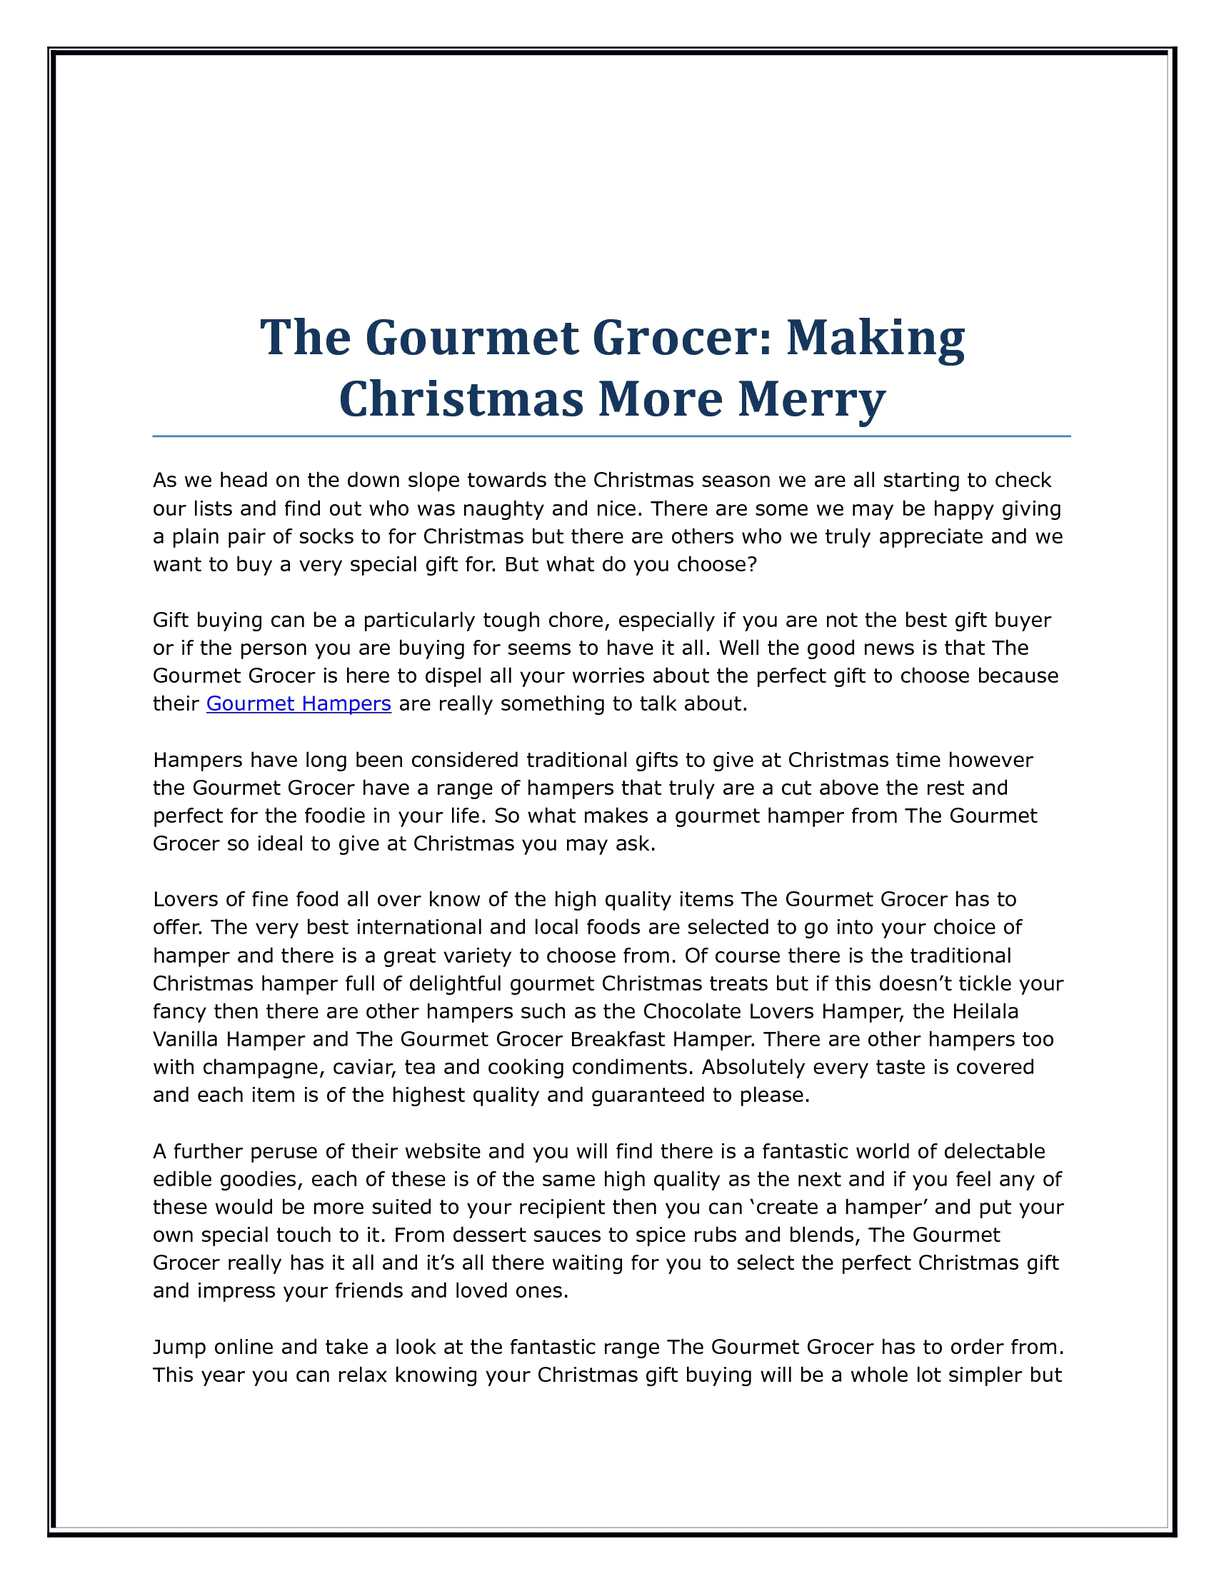 calamo the gourmet grocer making christmas more merry - And This Christmas Will Be A Very Special Christmas